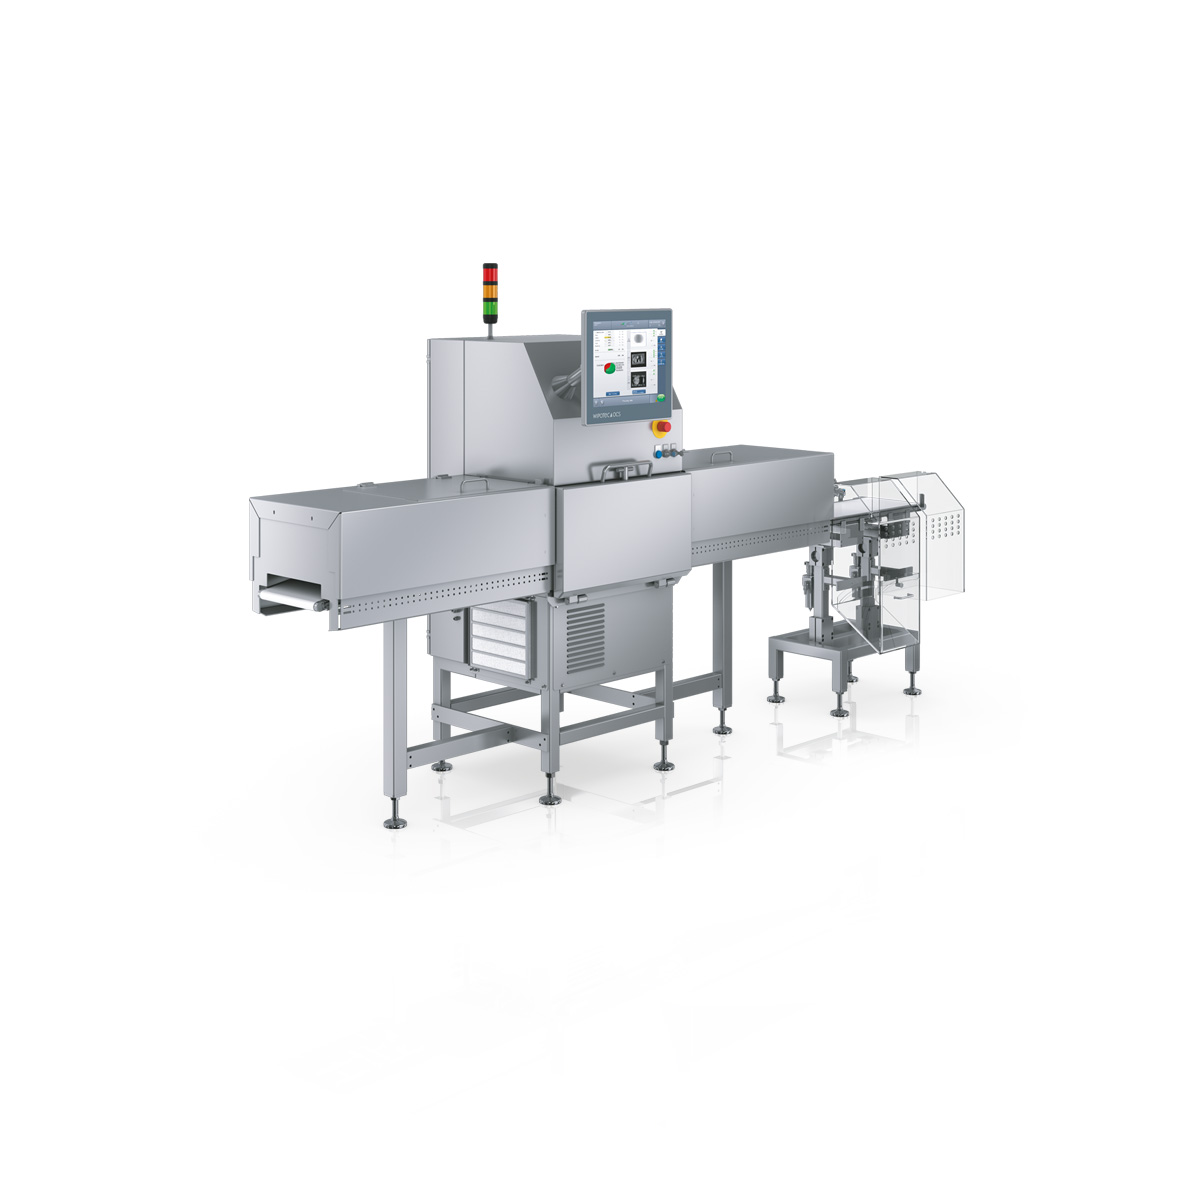 x-ray-inspection-vision-inspection-system-sc-v-left-view